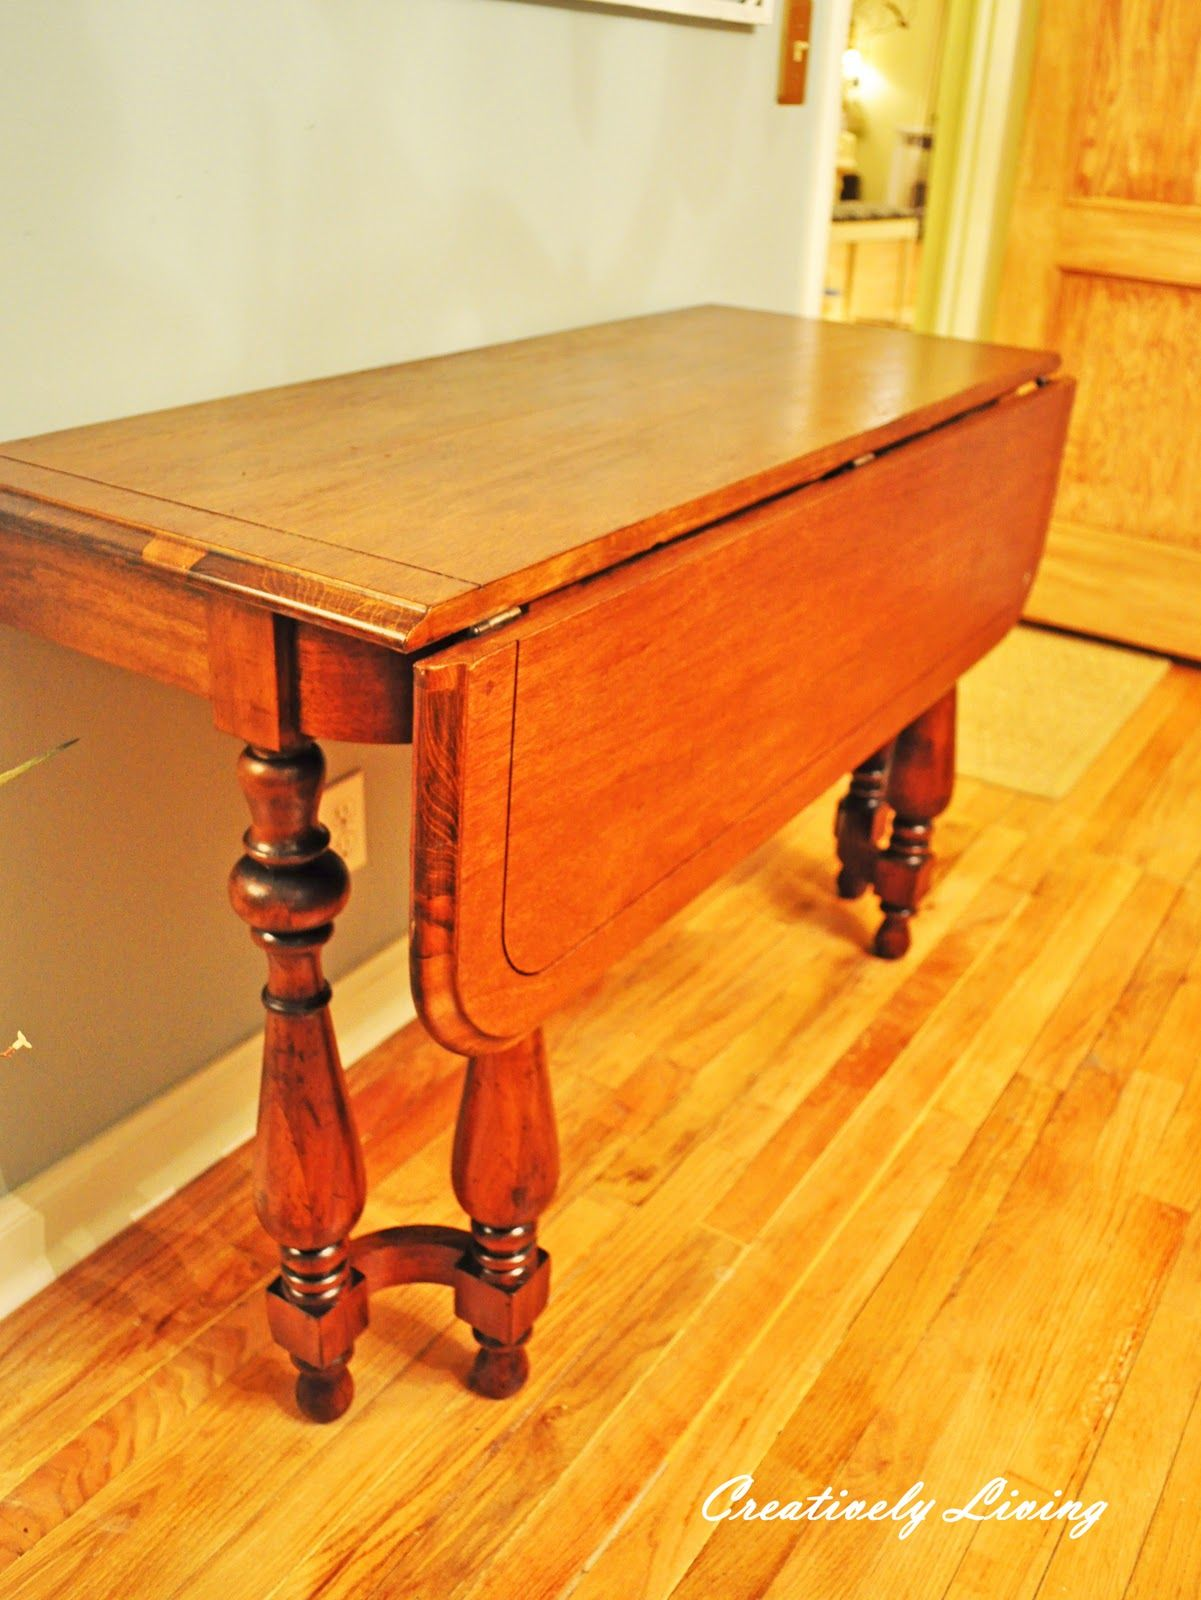 How to Refinish a Table in 1 Hour! (Quick Refinishing